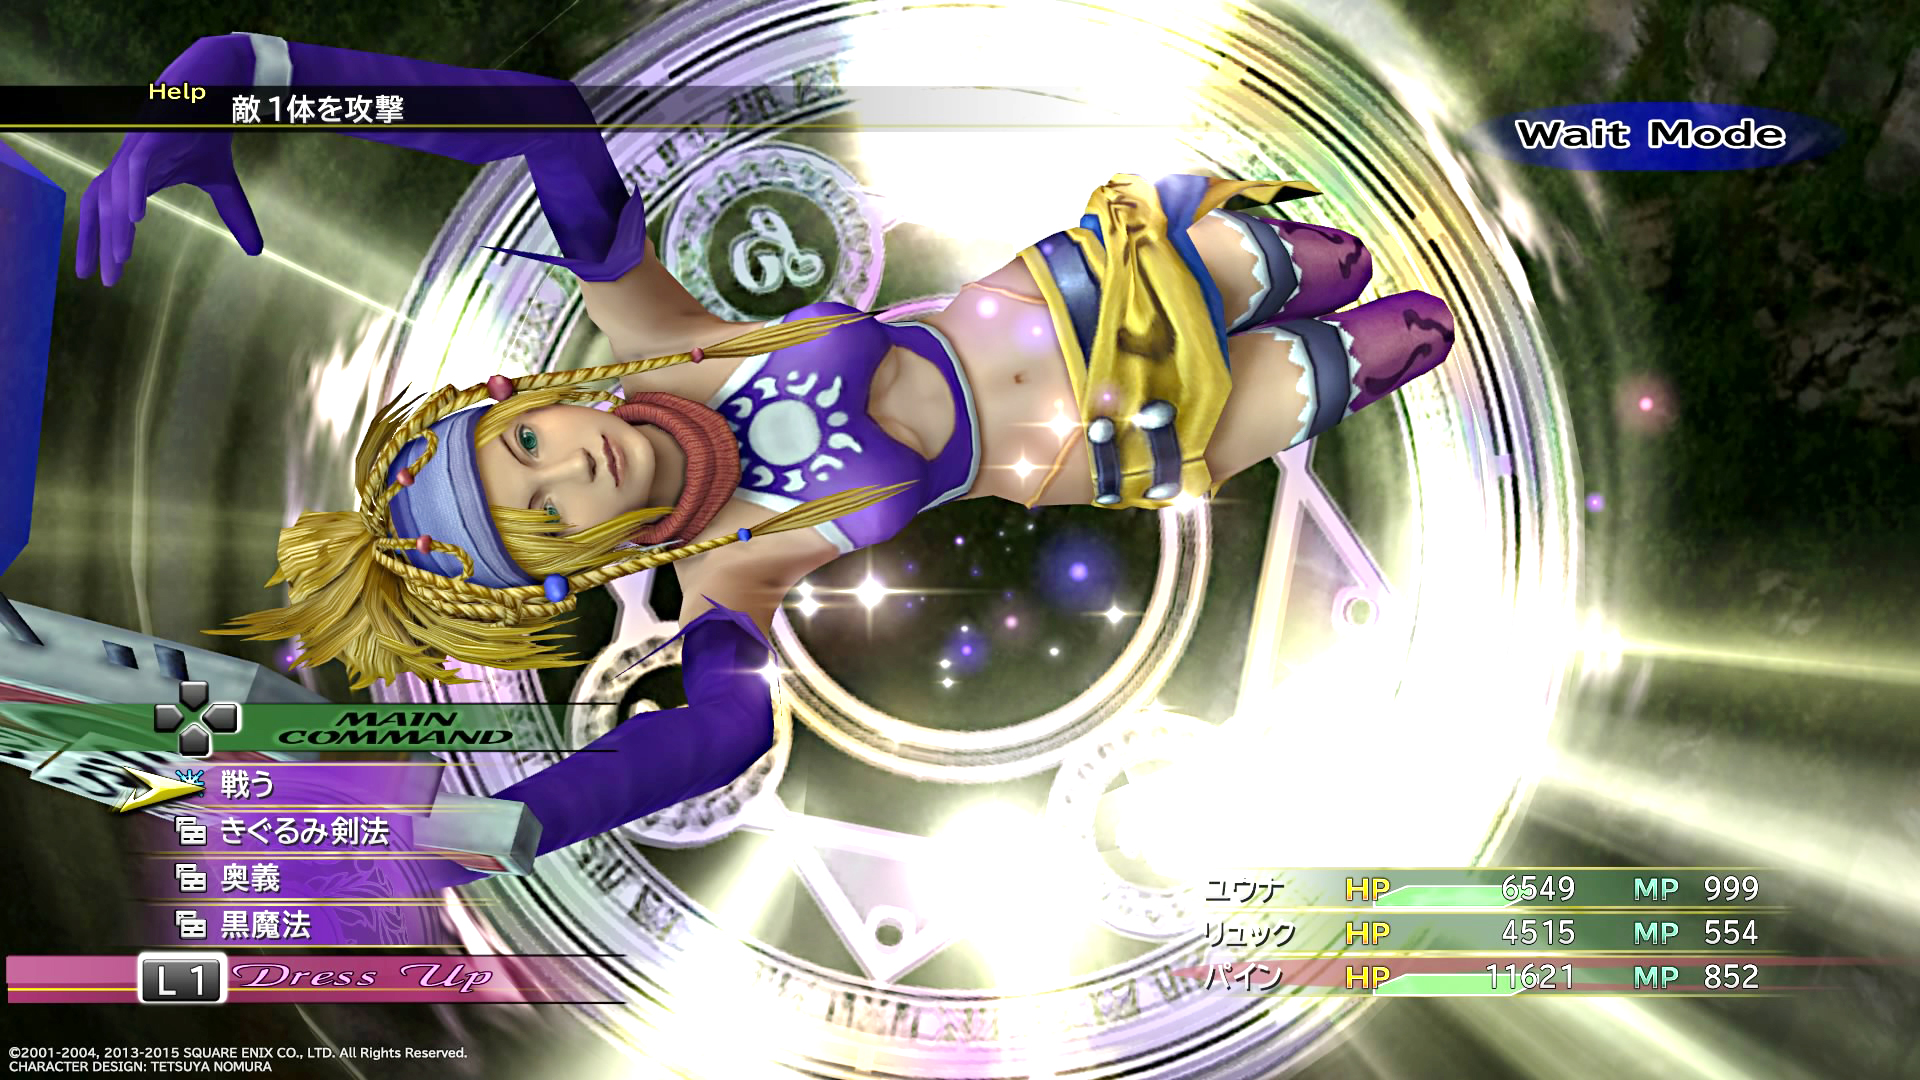 Final Fantasy X-2 screenshot of Rikku in a revealing Gun Mage outfit leaping into the air towards the camera